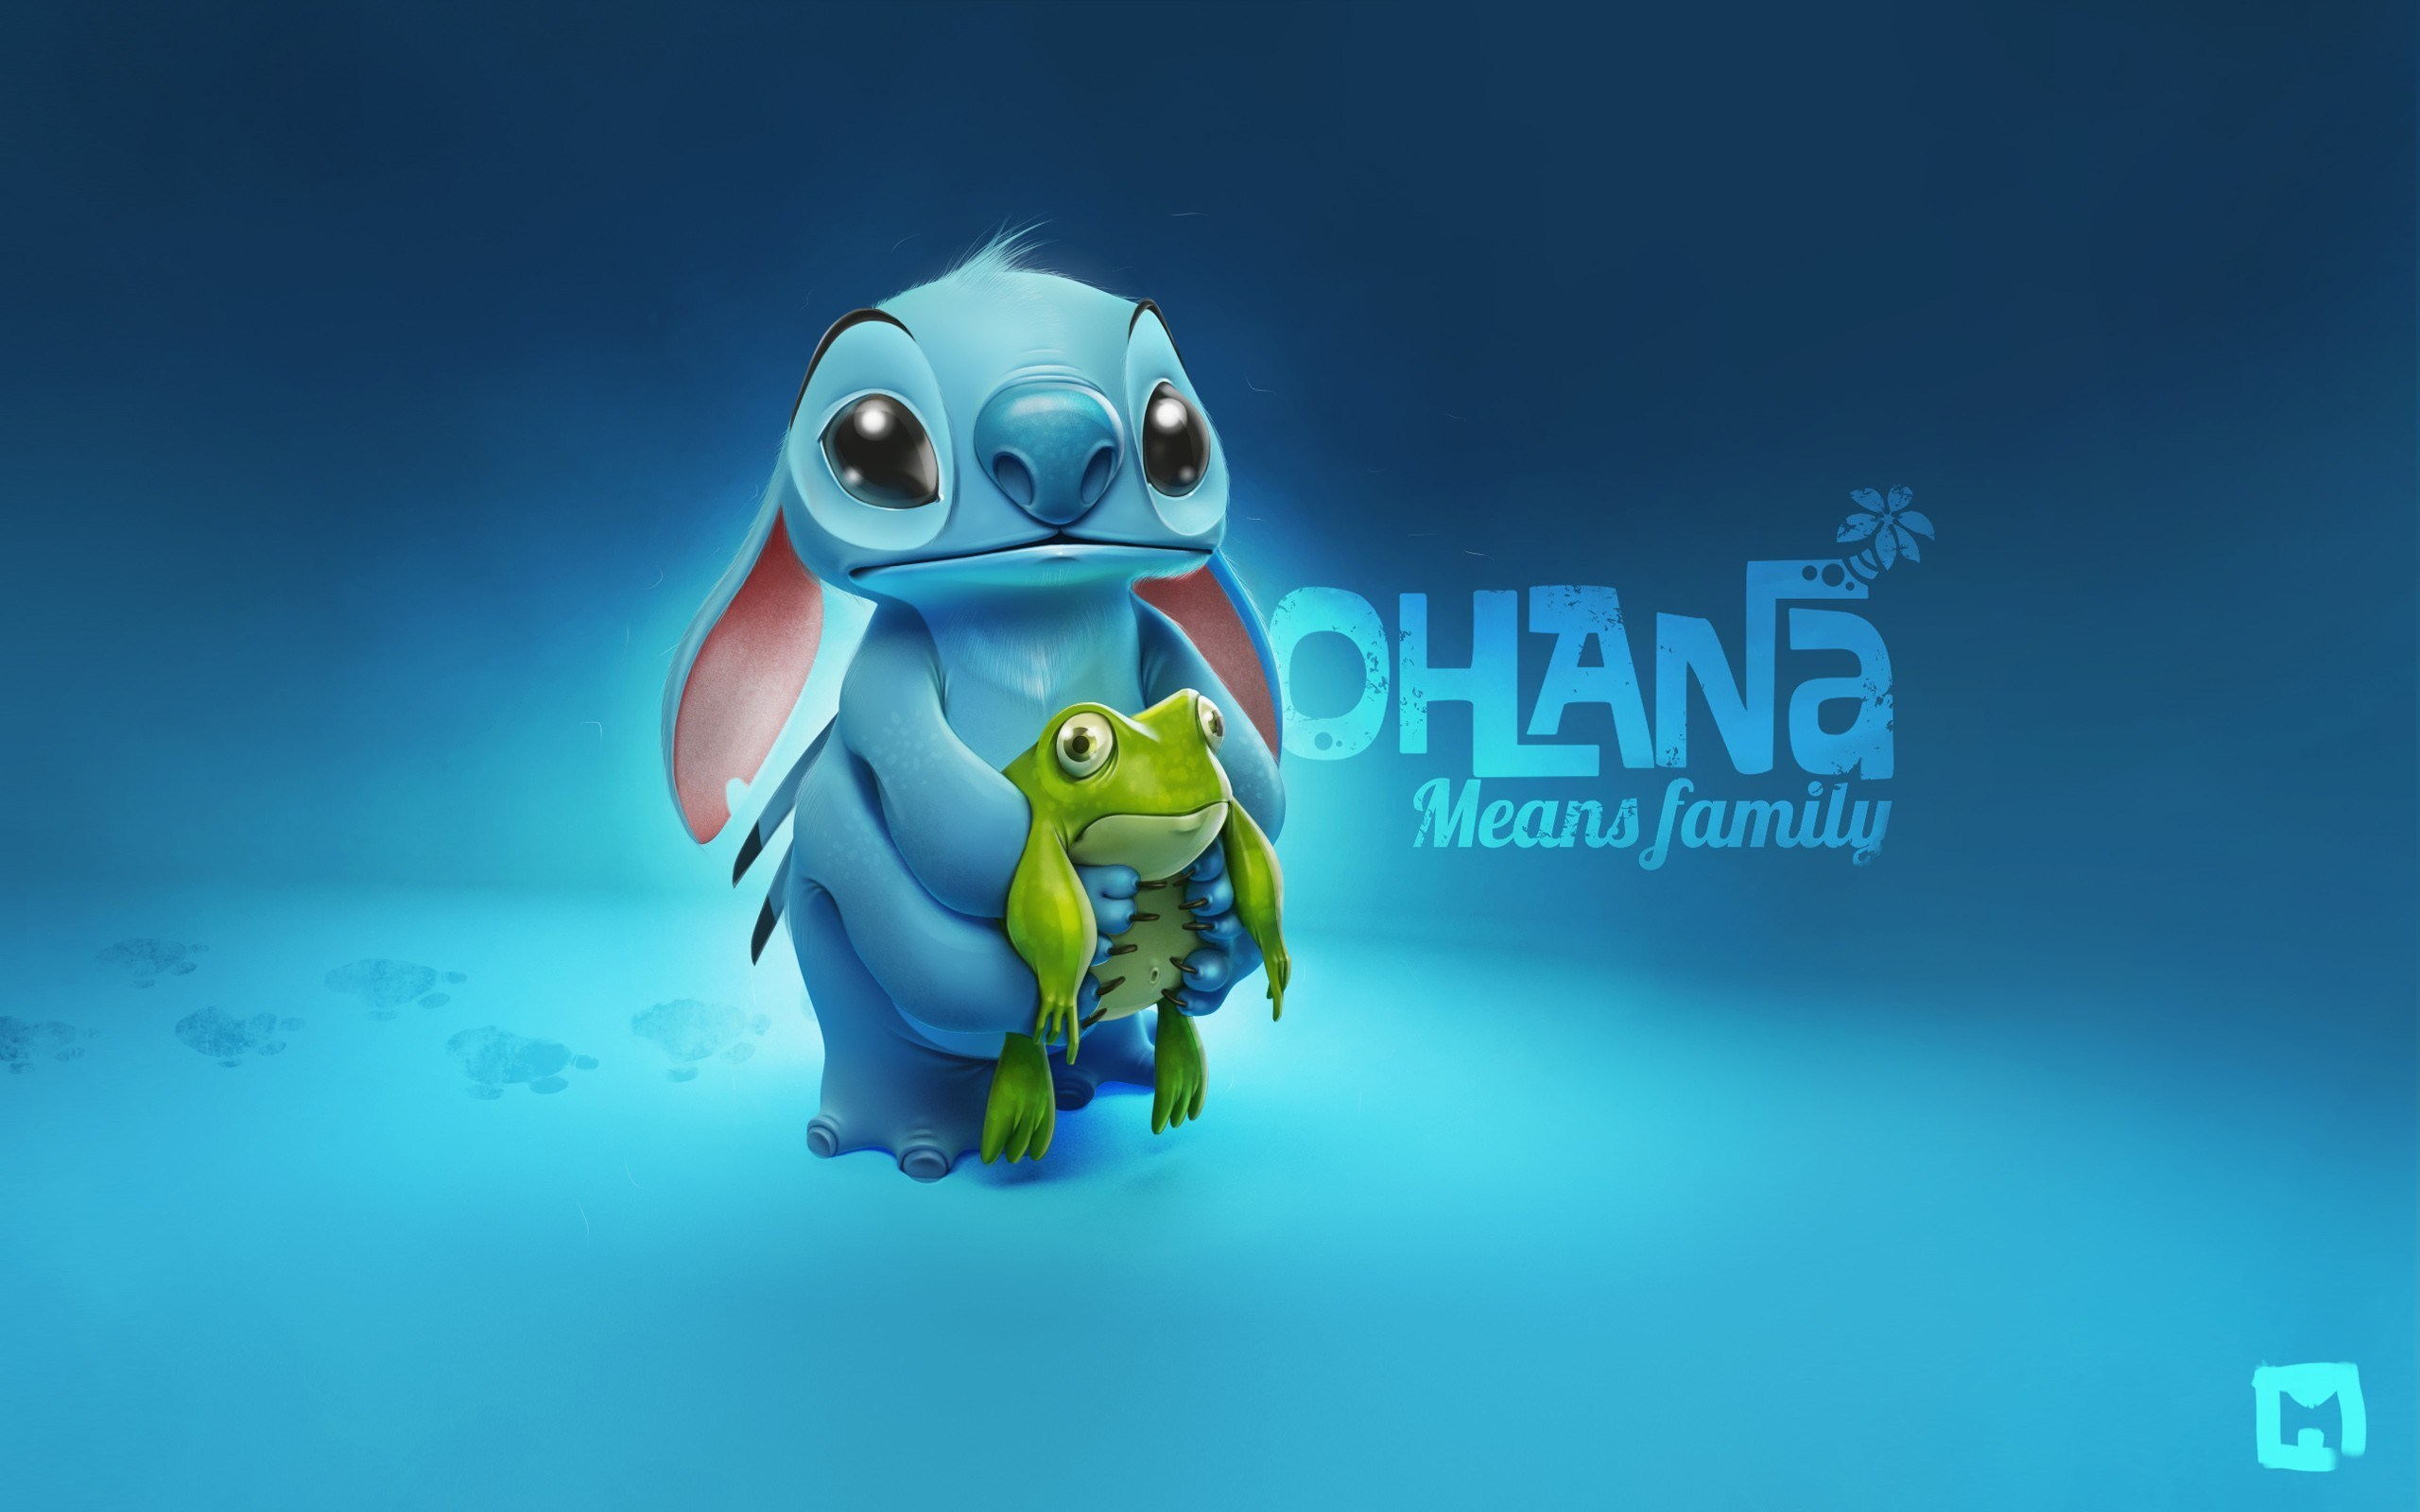 lilo and stitch Computer Wallpapers Desktop Backgrounds 2560x1600 2560x1600